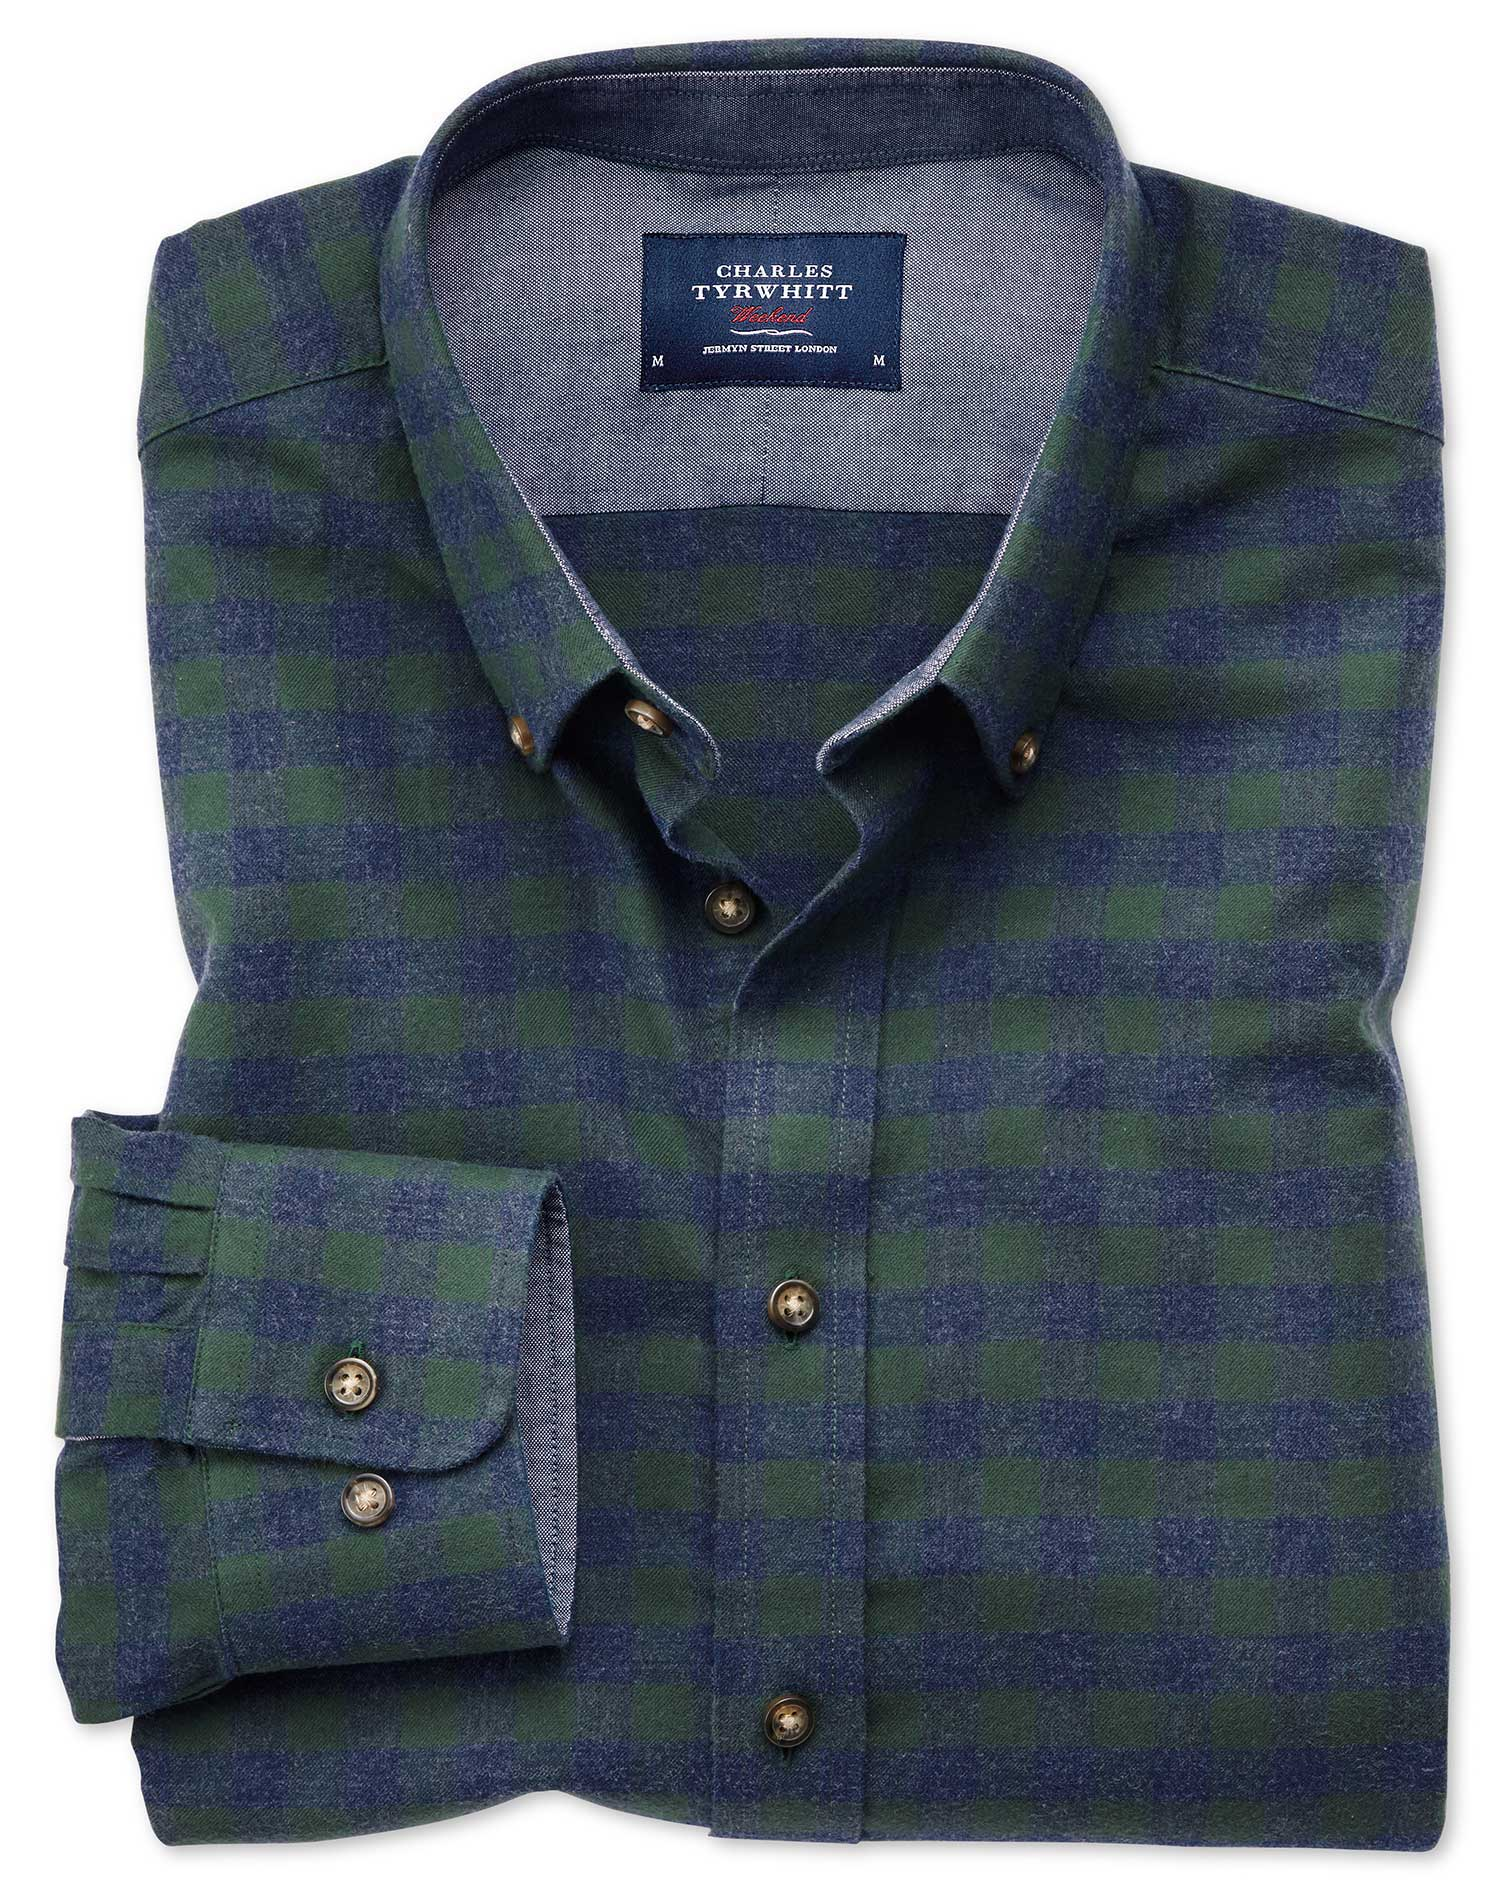 Classic Fit Button-Down Soft Cotton Green and Blue Check Shirt Single Cuff Size XL by Charles Tyrwhi